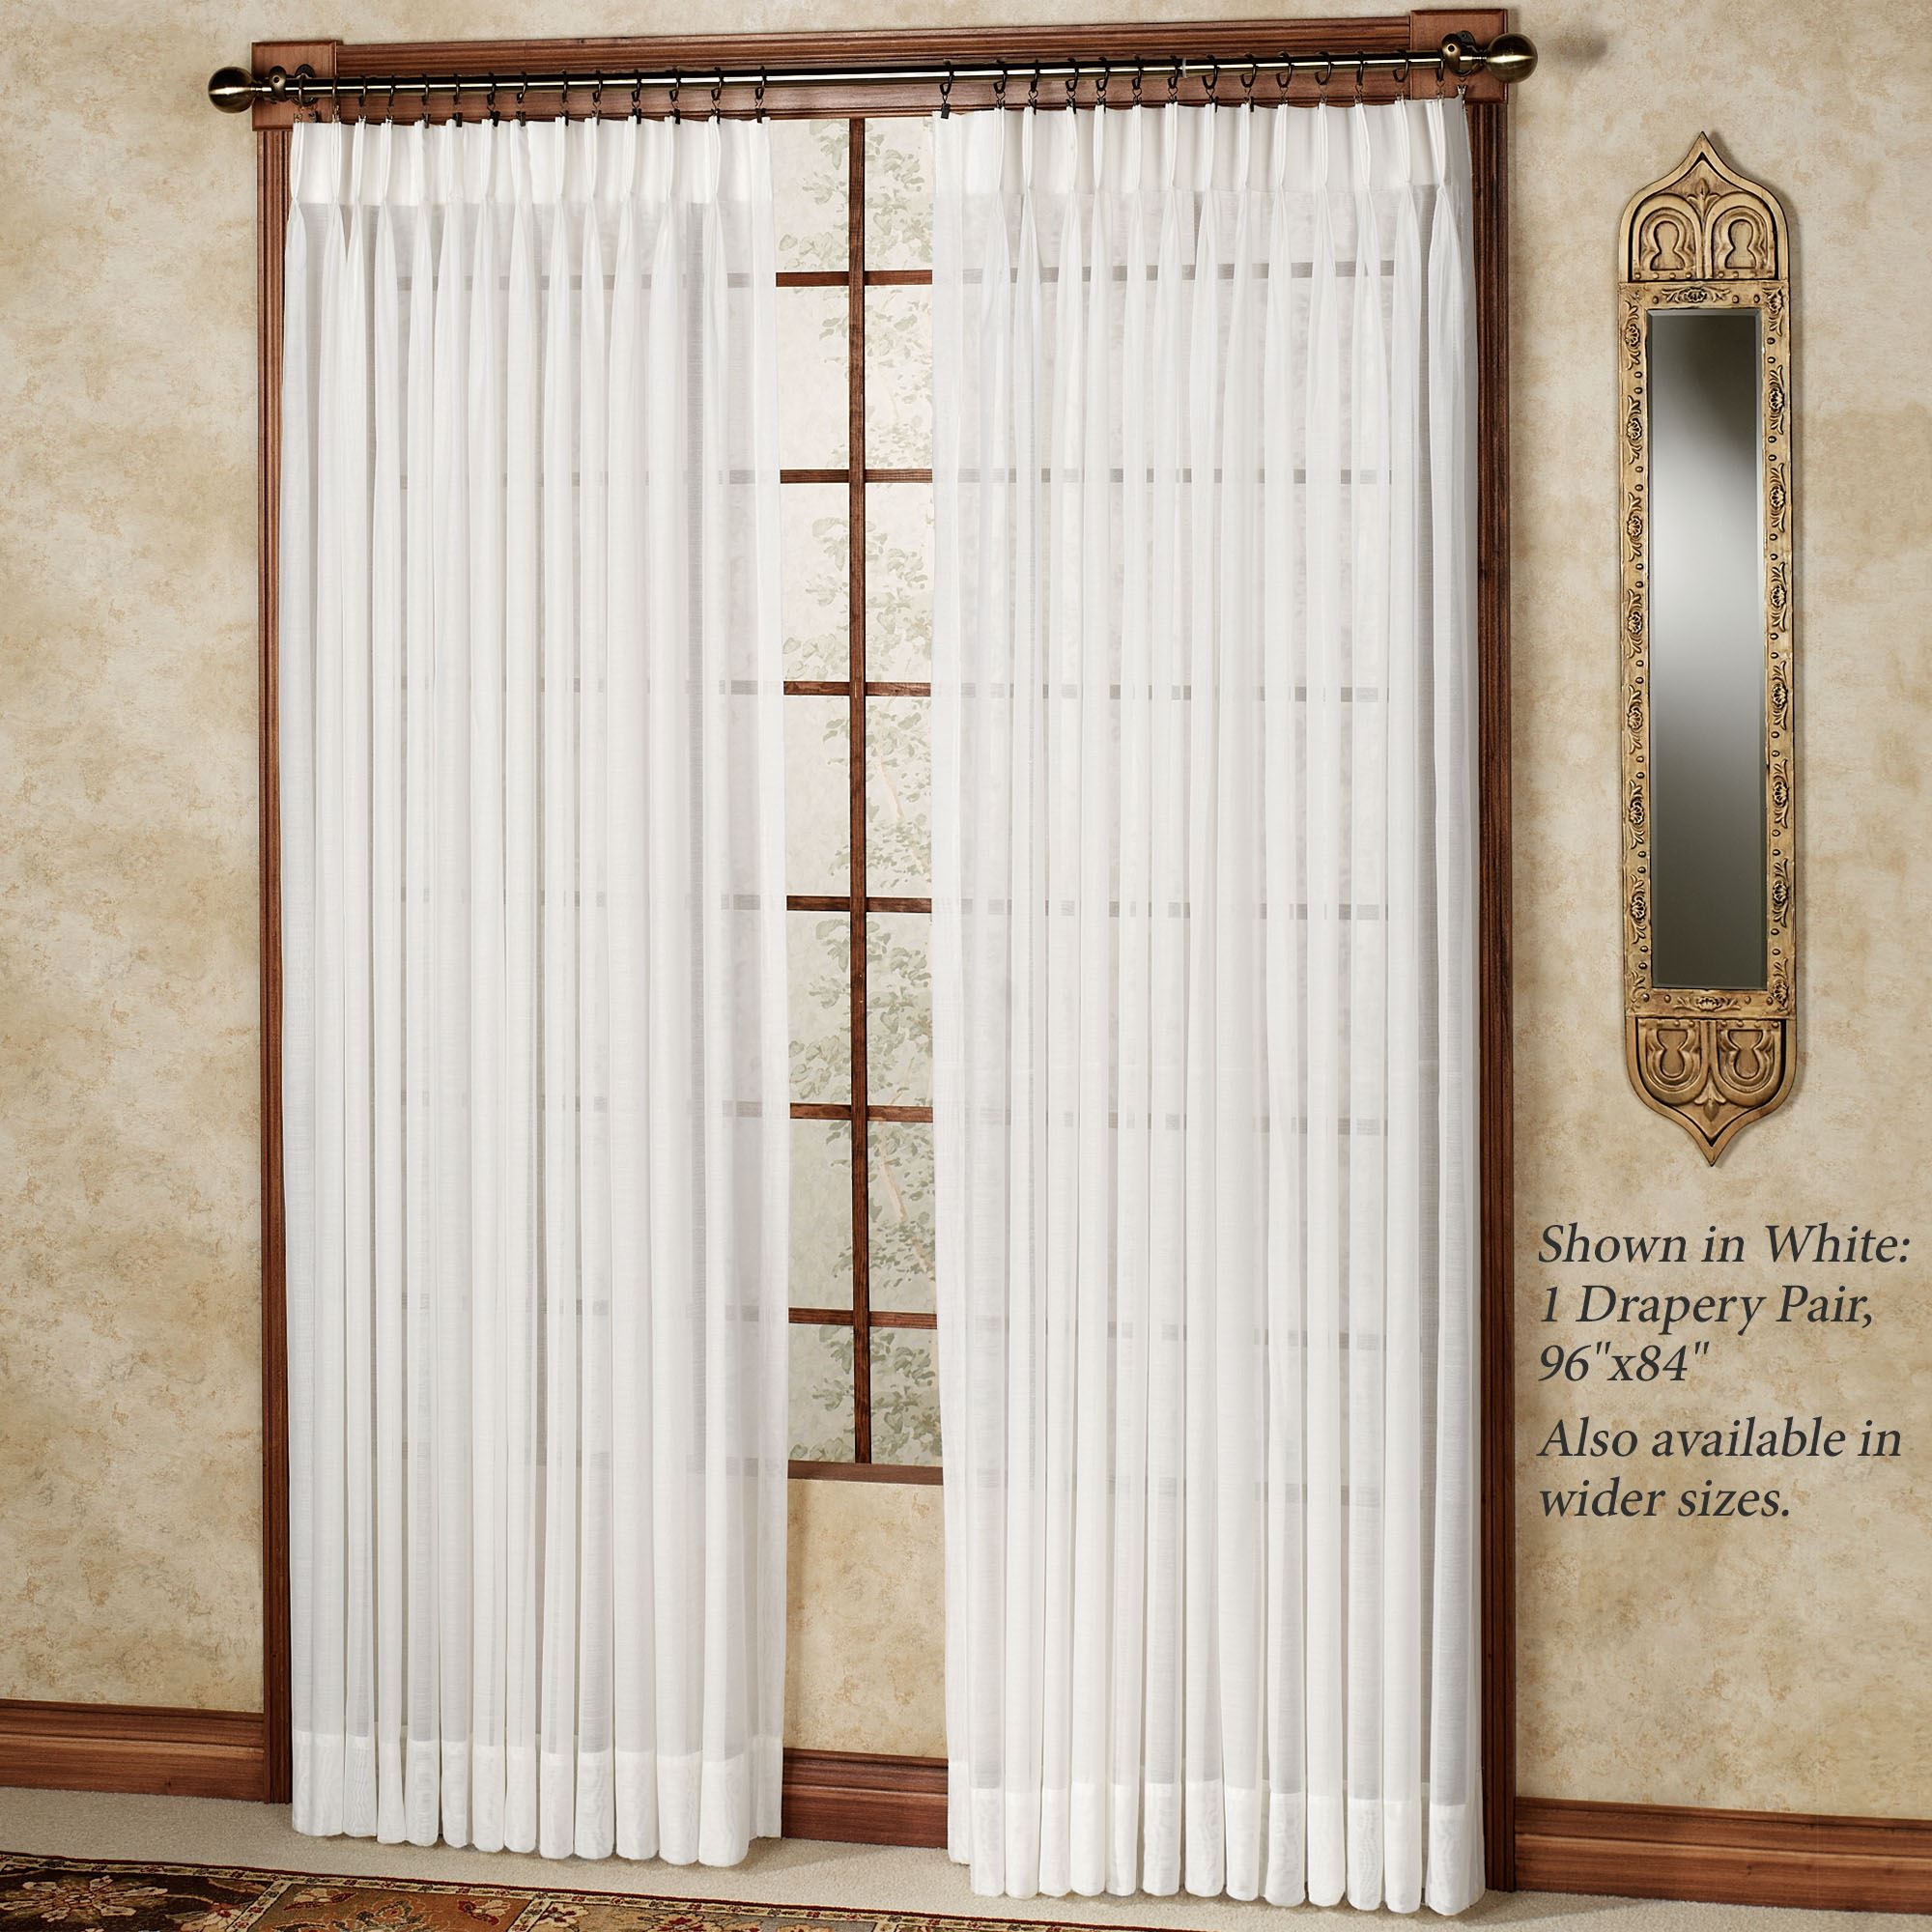 Splendor Semi Sheer Pinch Pleat Drapery Curtain Pair